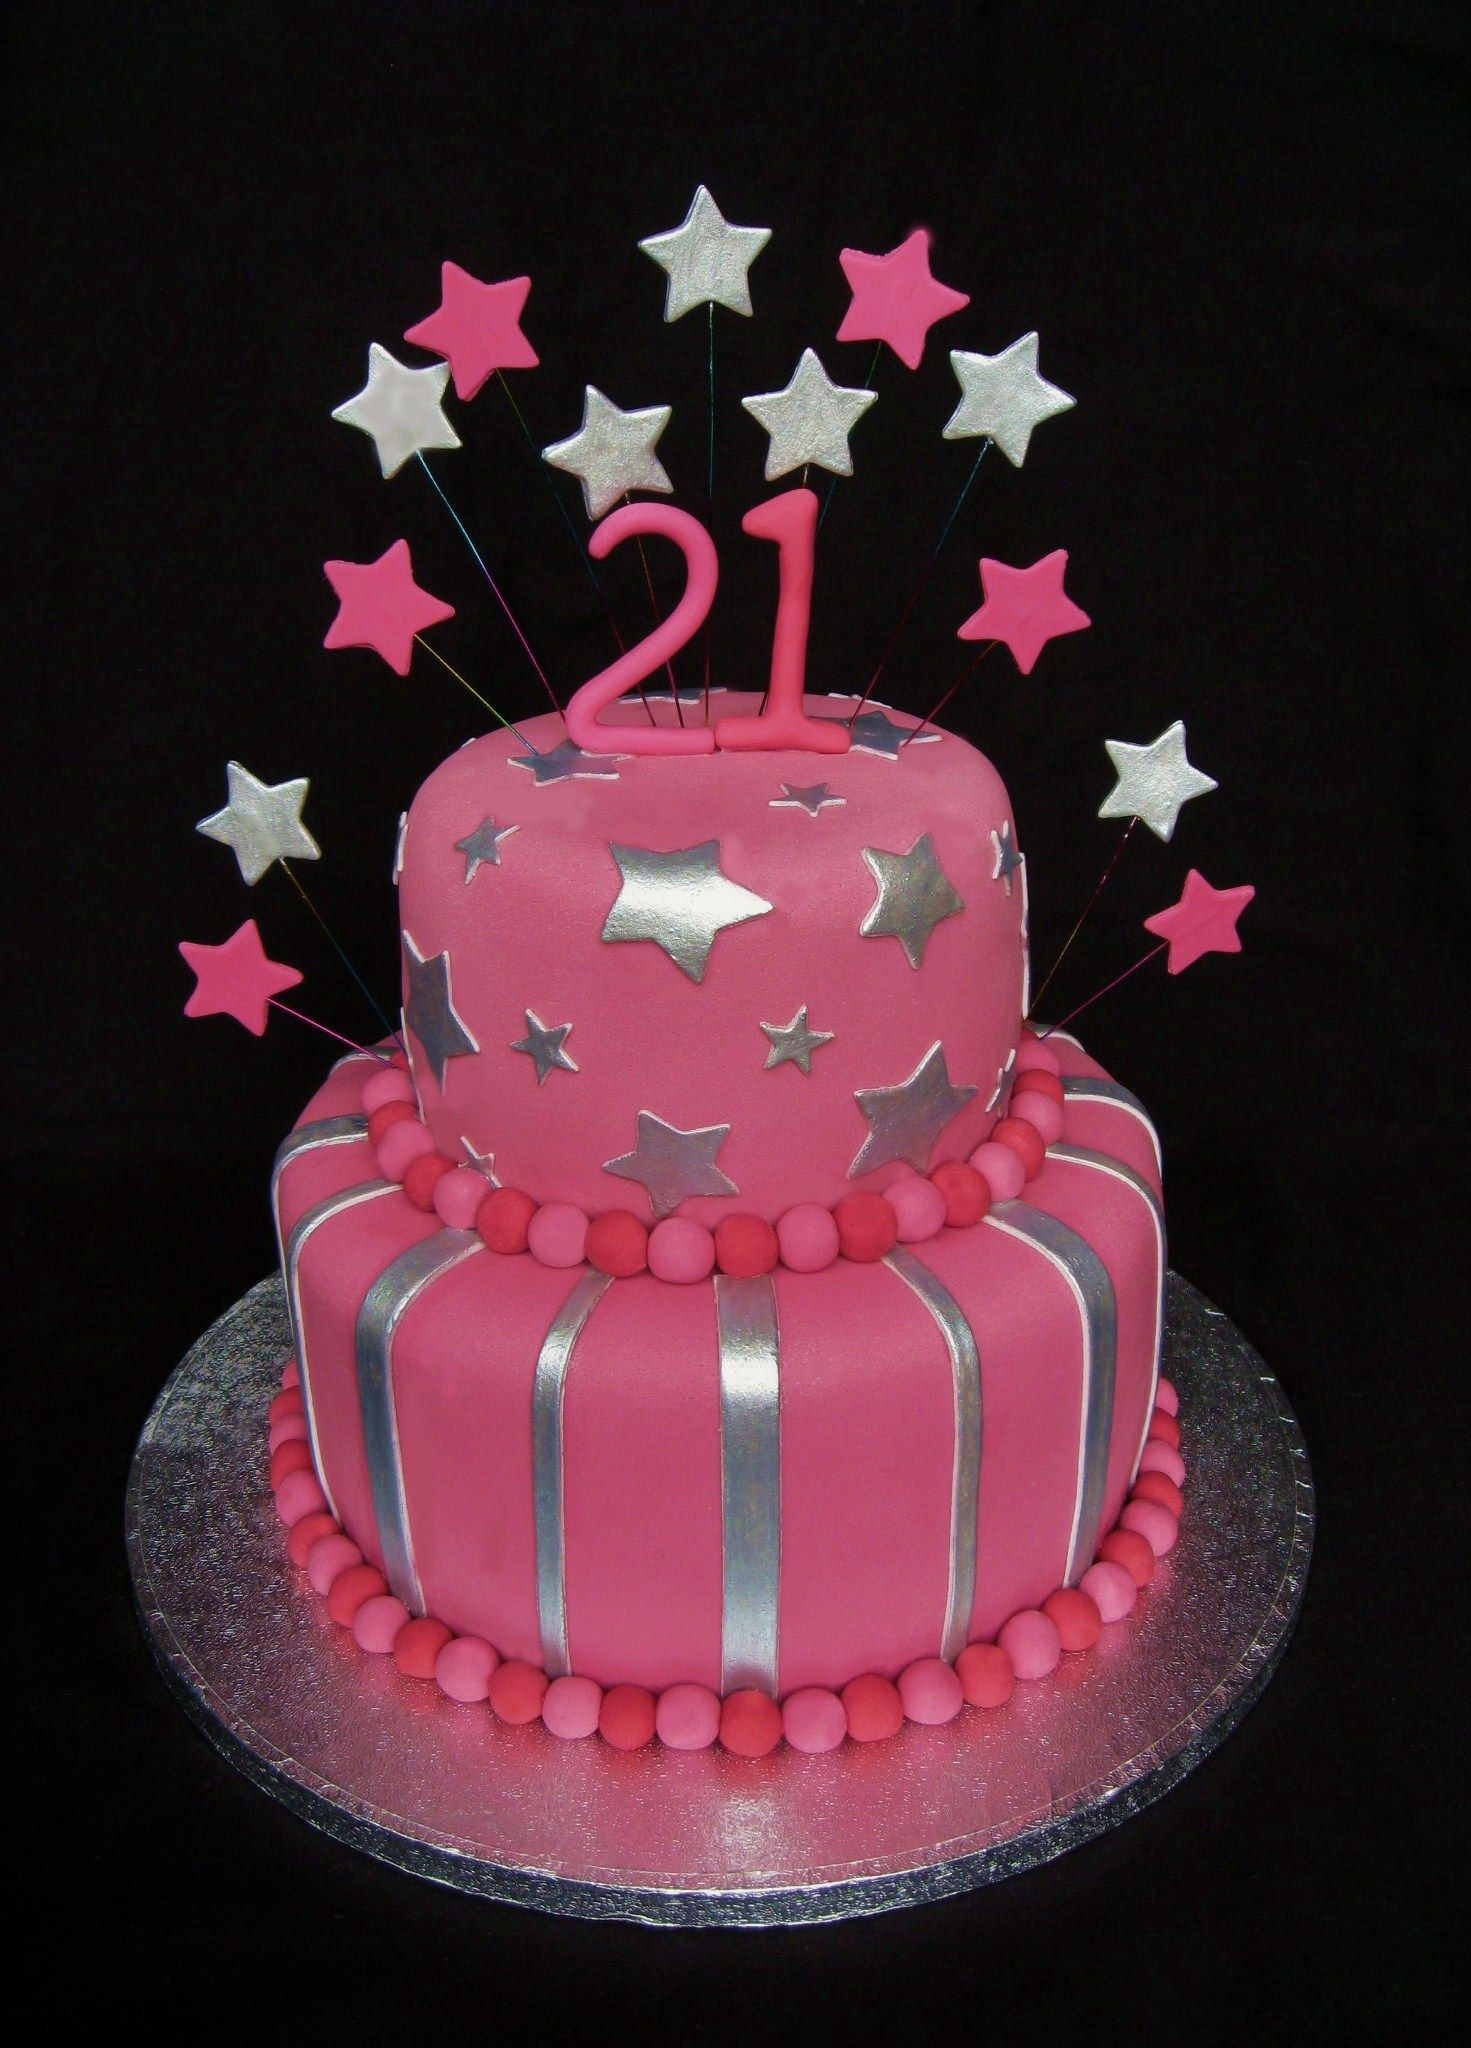 21st Birthday Cake Girls 21st Birthday Cake Cakes Pinterest